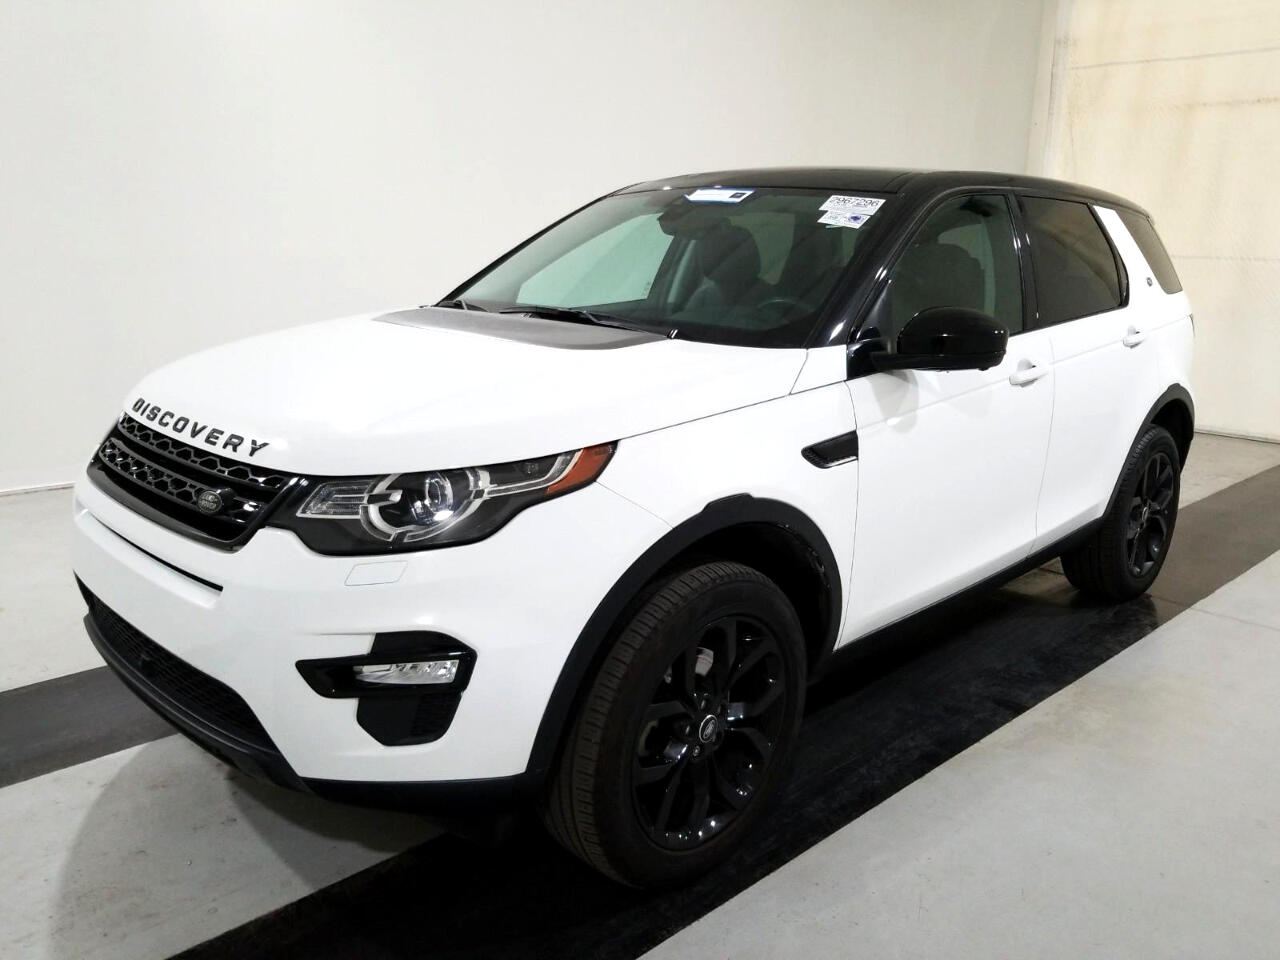 2016 Land Rover Discovery Sport AWD 4dr HSE LUX